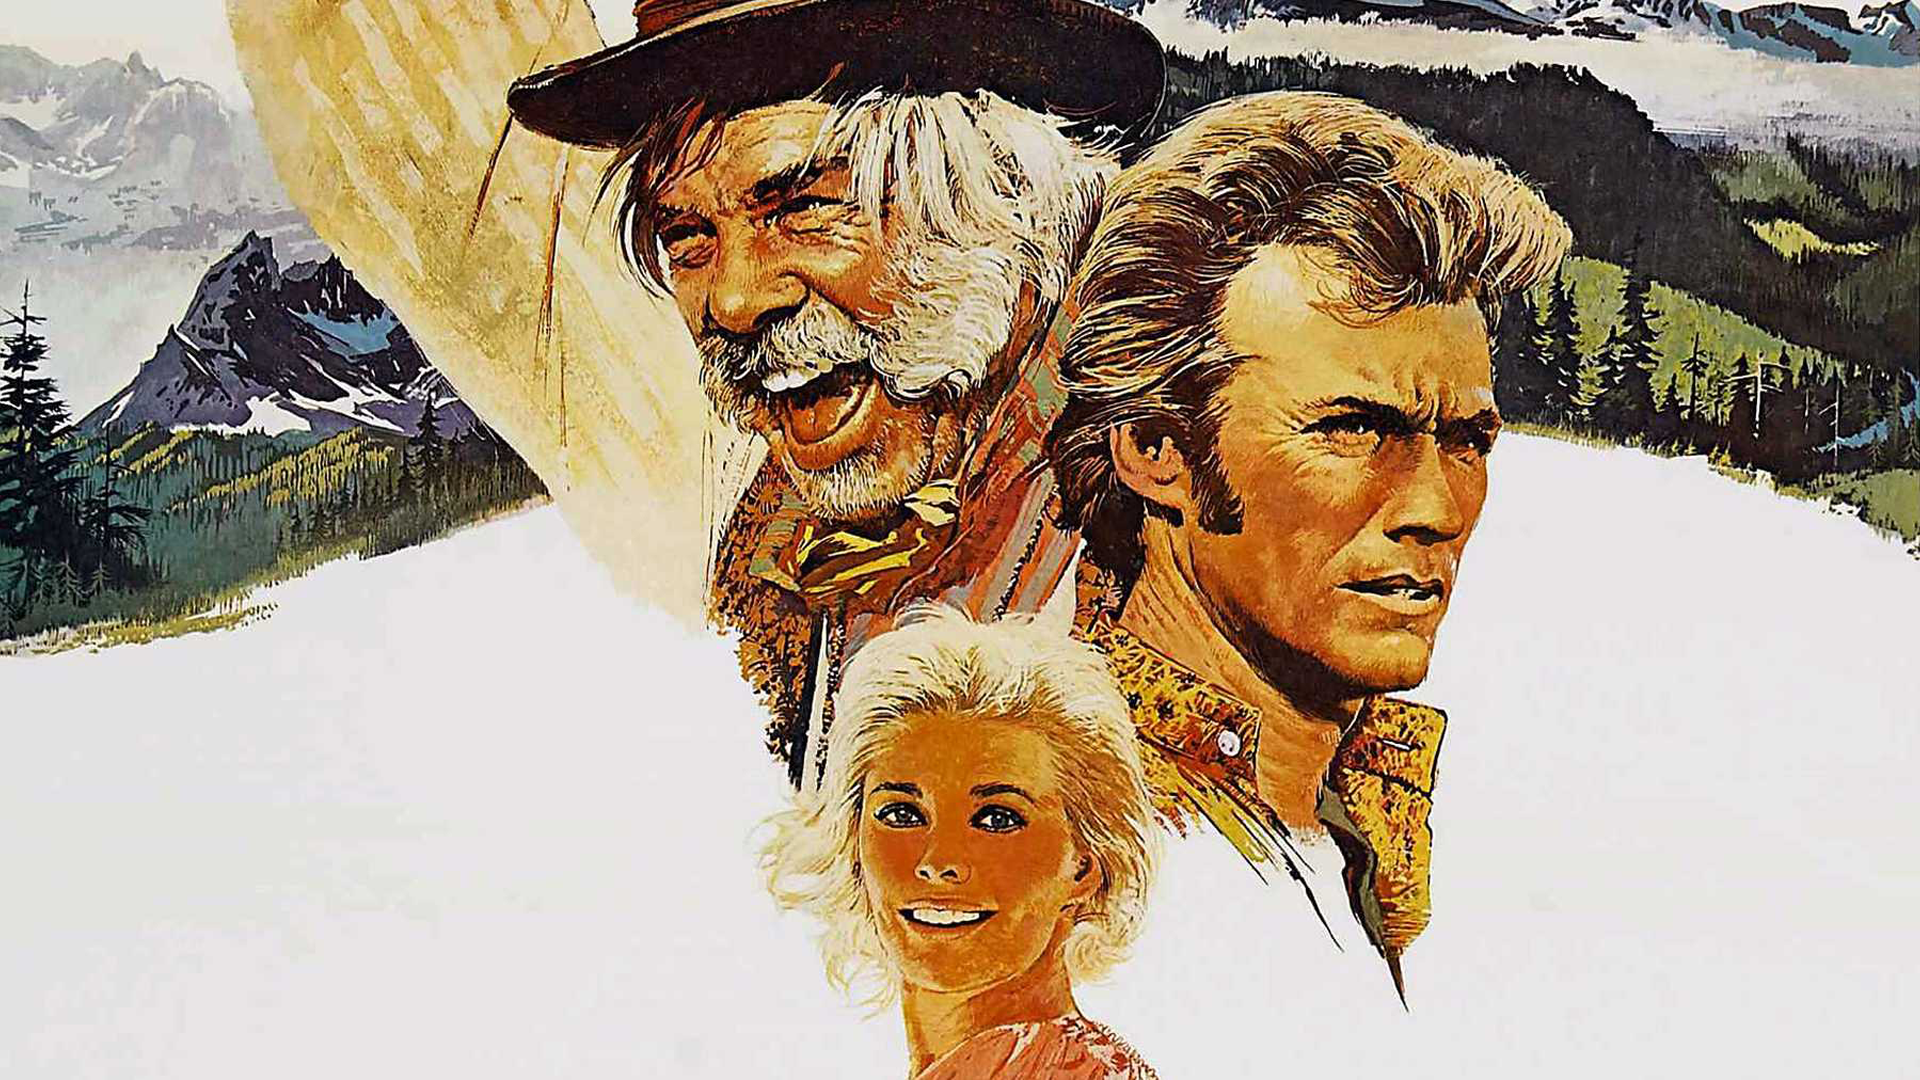 13 Paint Your Wagon